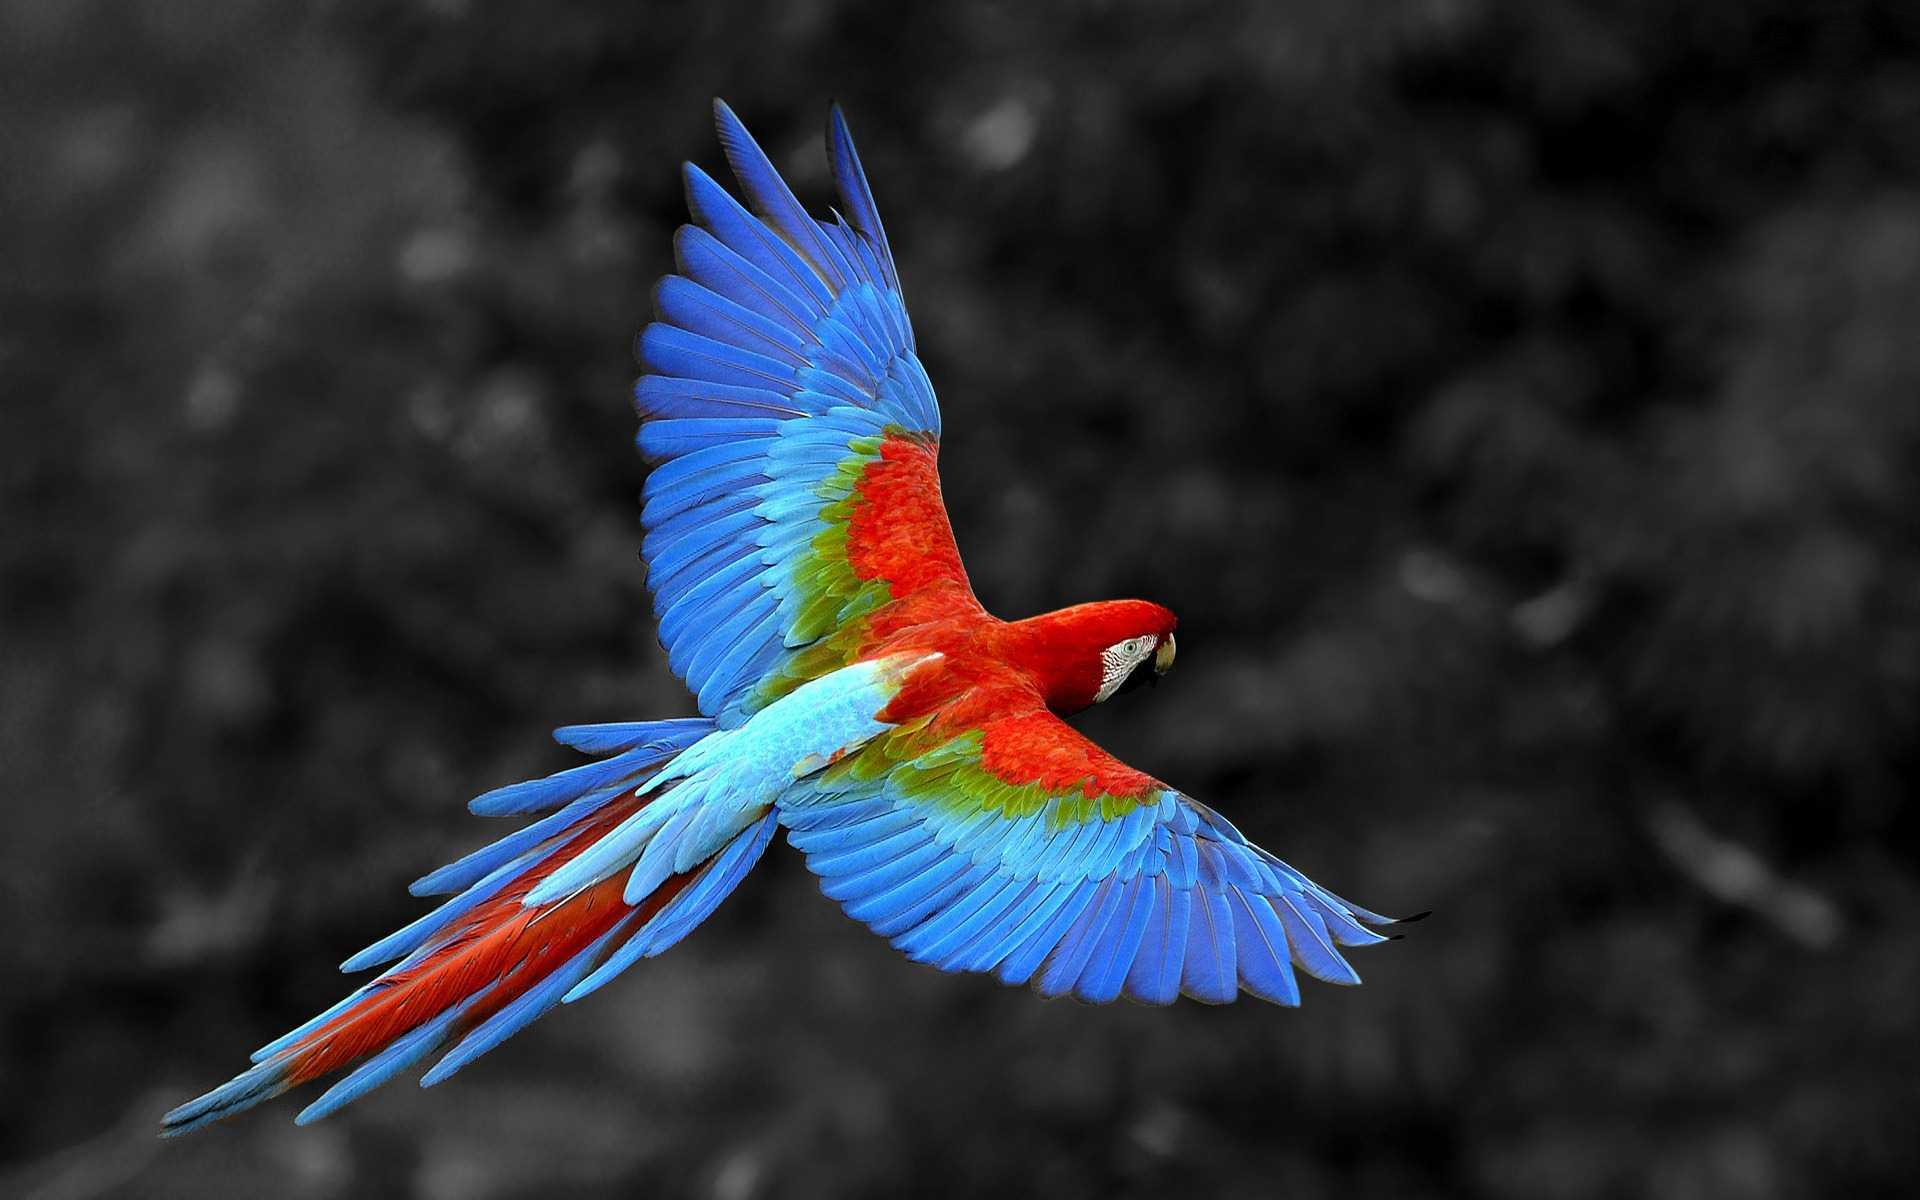 Scarlet Macaw Bird, HD Birds, 4k Wallpapers, Image, Backgrounds